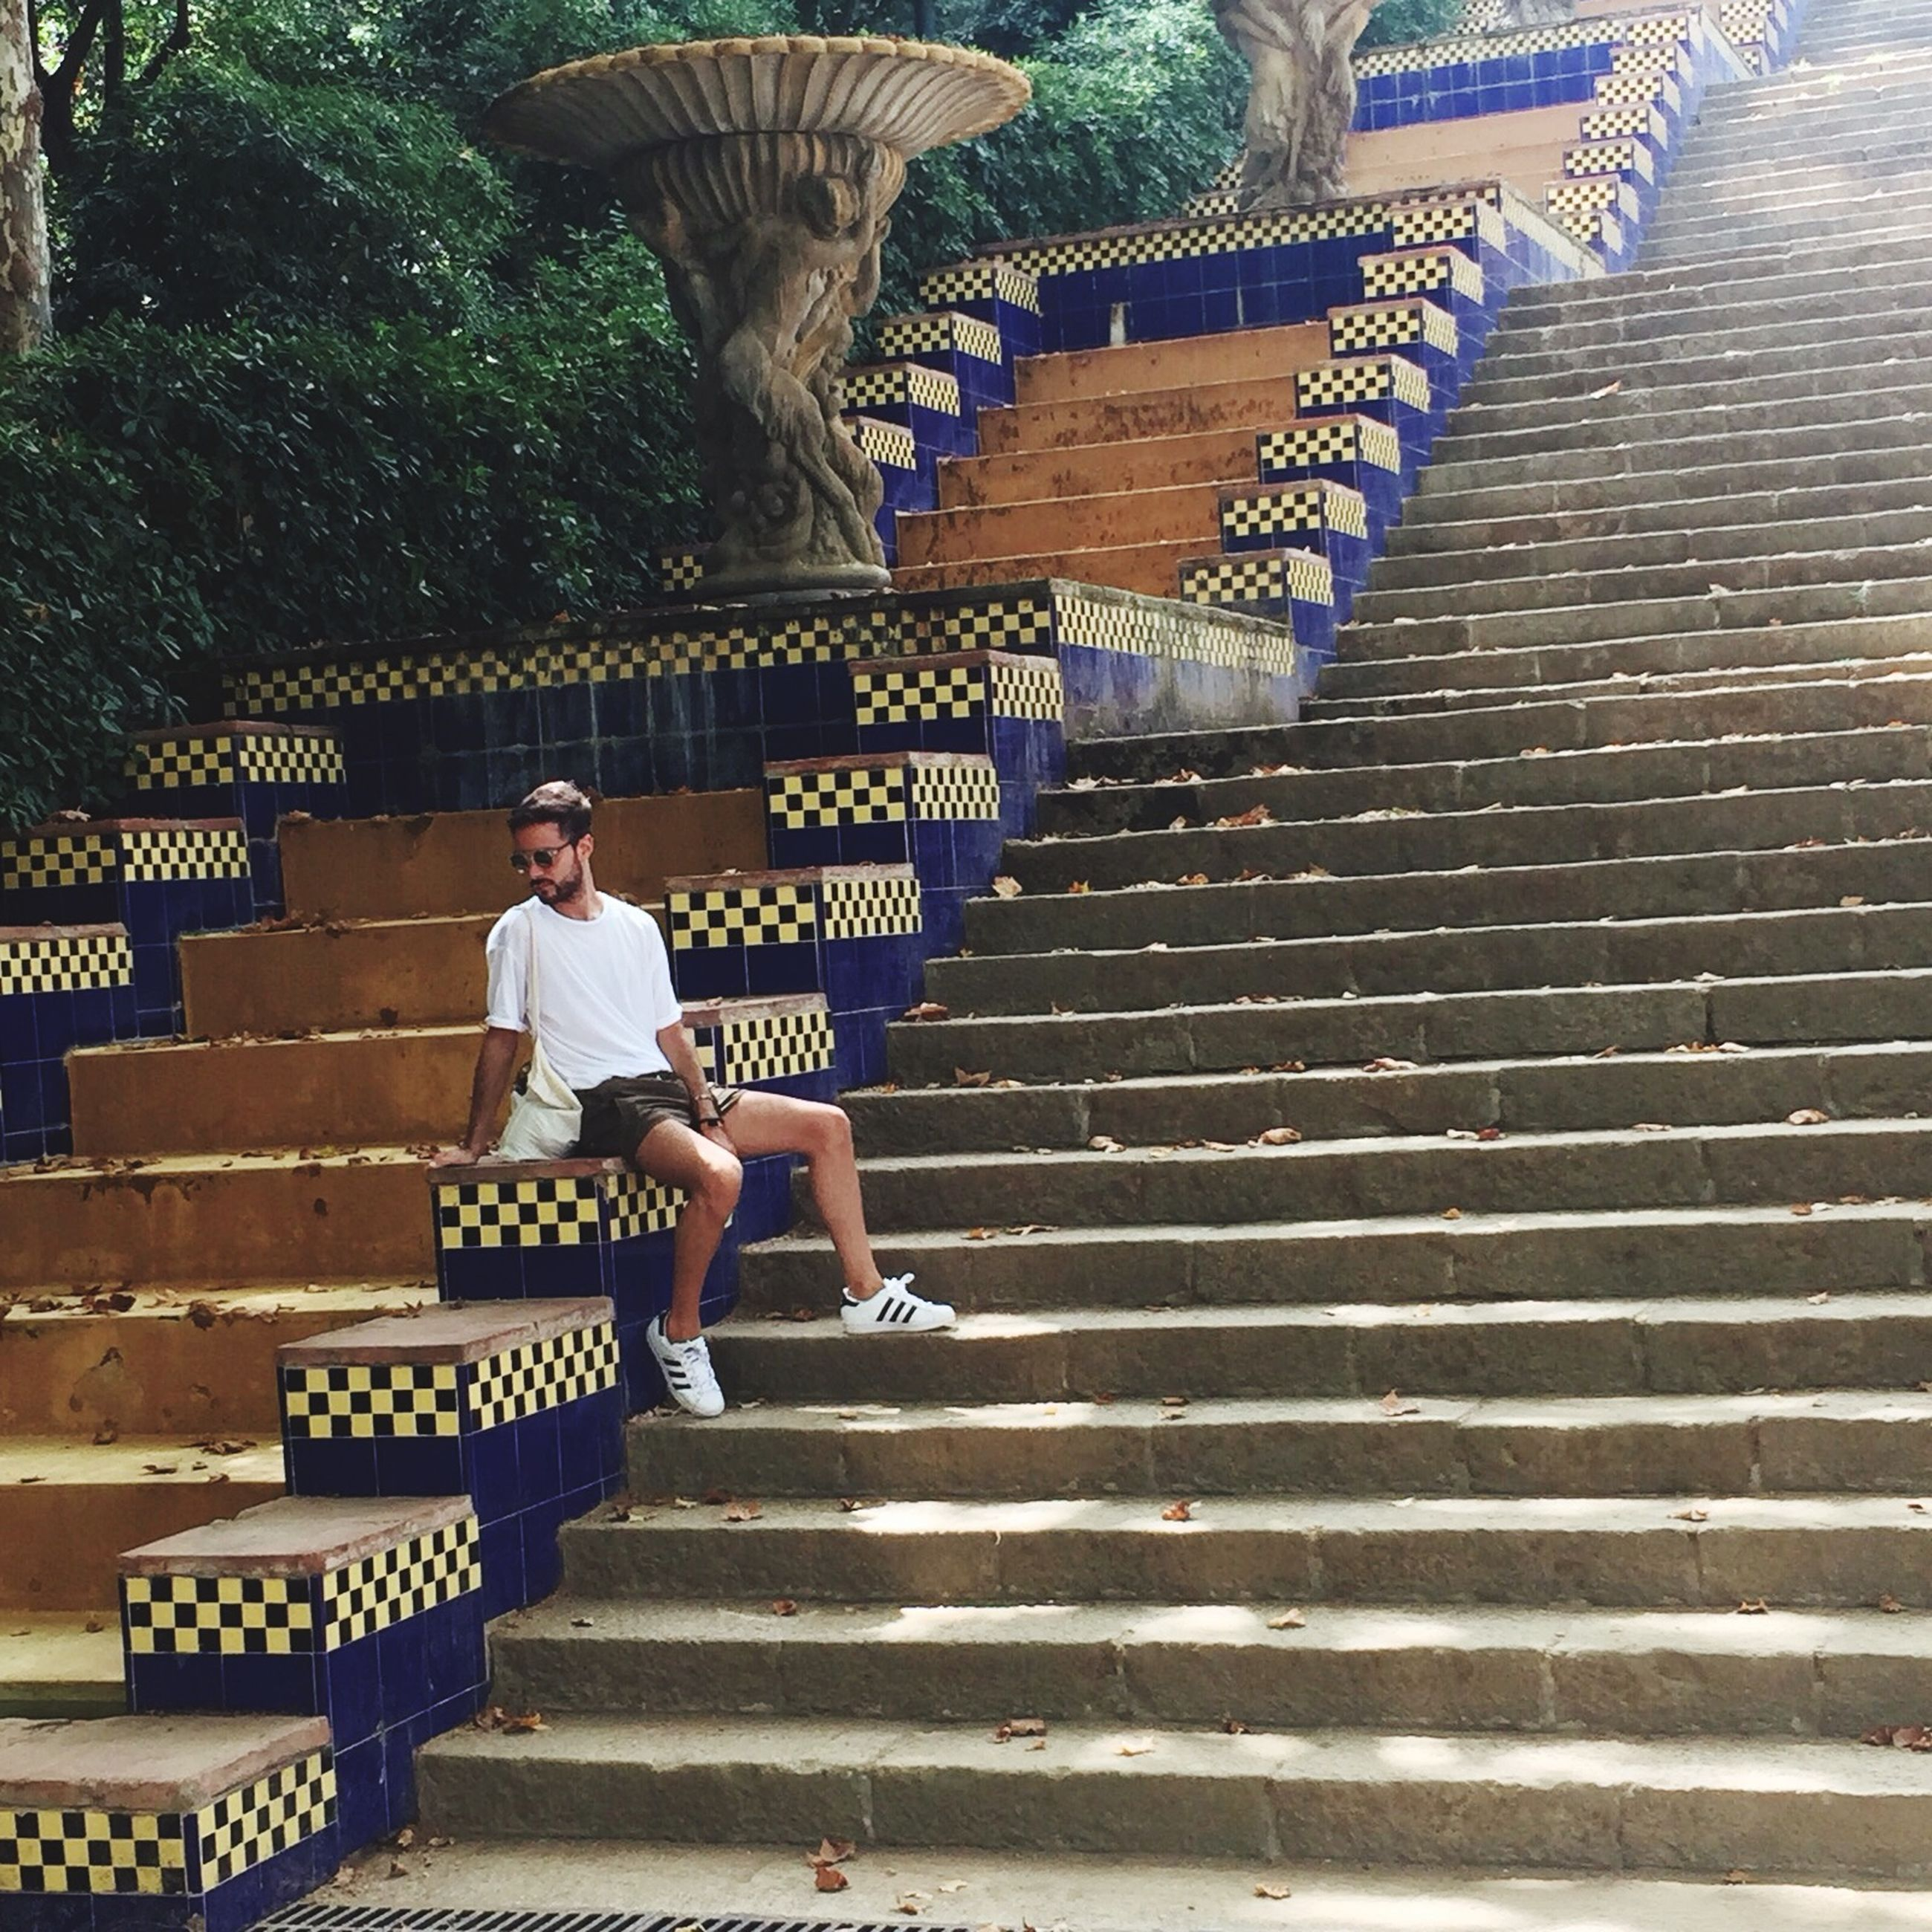 steps, lifestyles, full length, leisure activity, built structure, steps and staircases, casual clothing, building exterior, architecture, staircase, rear view, walking, the way forward, railing, outdoors, sunlight, standing, day